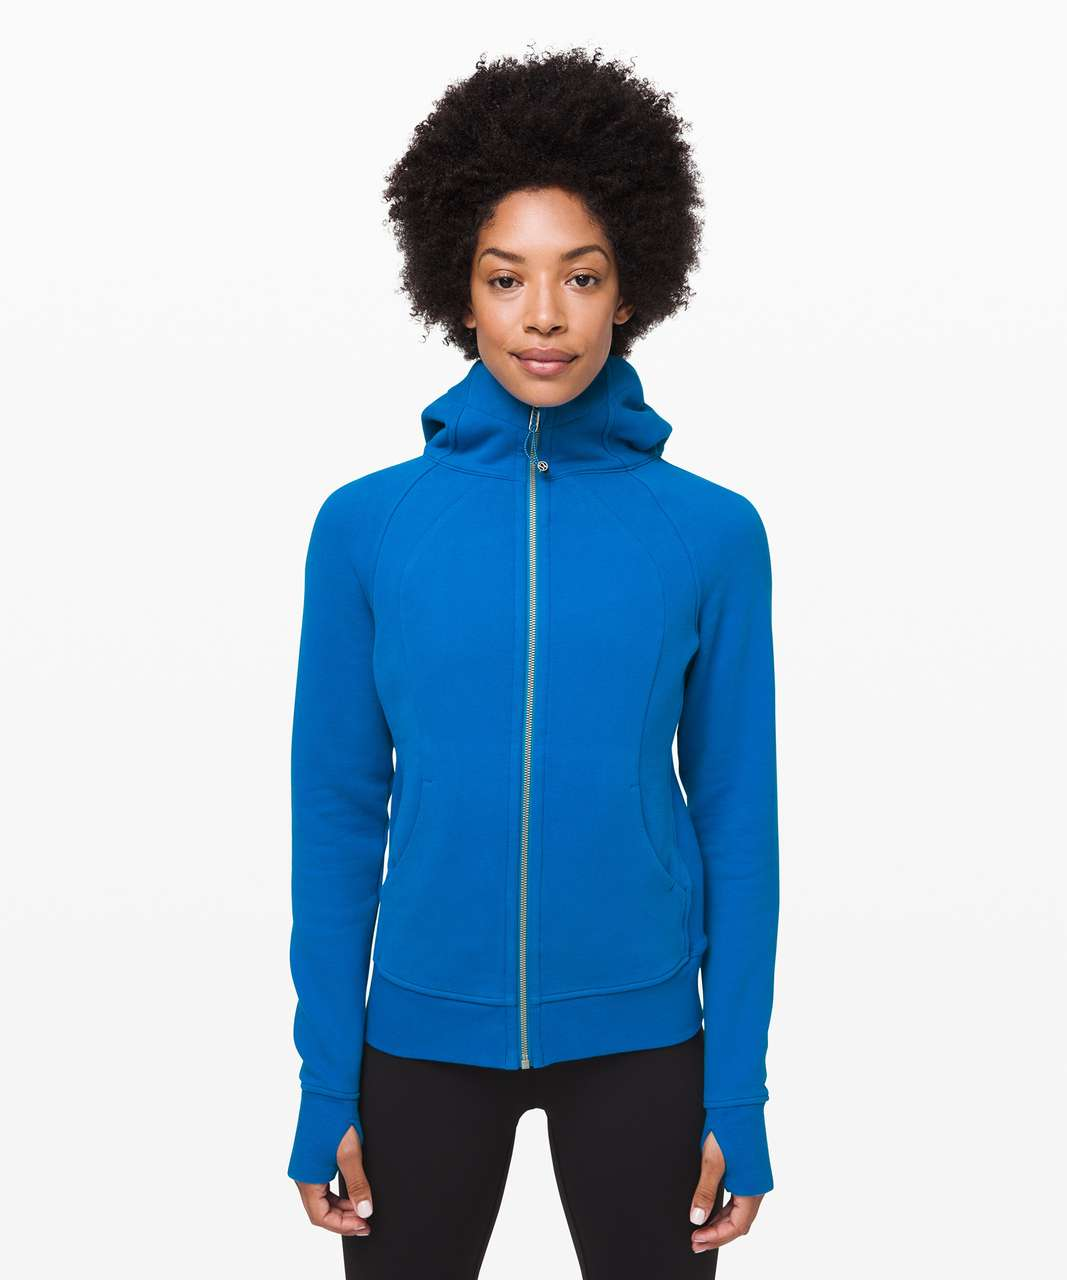 Lululemon Scuba Hoodie *Light Cotton Fleece - Amalfi Blue